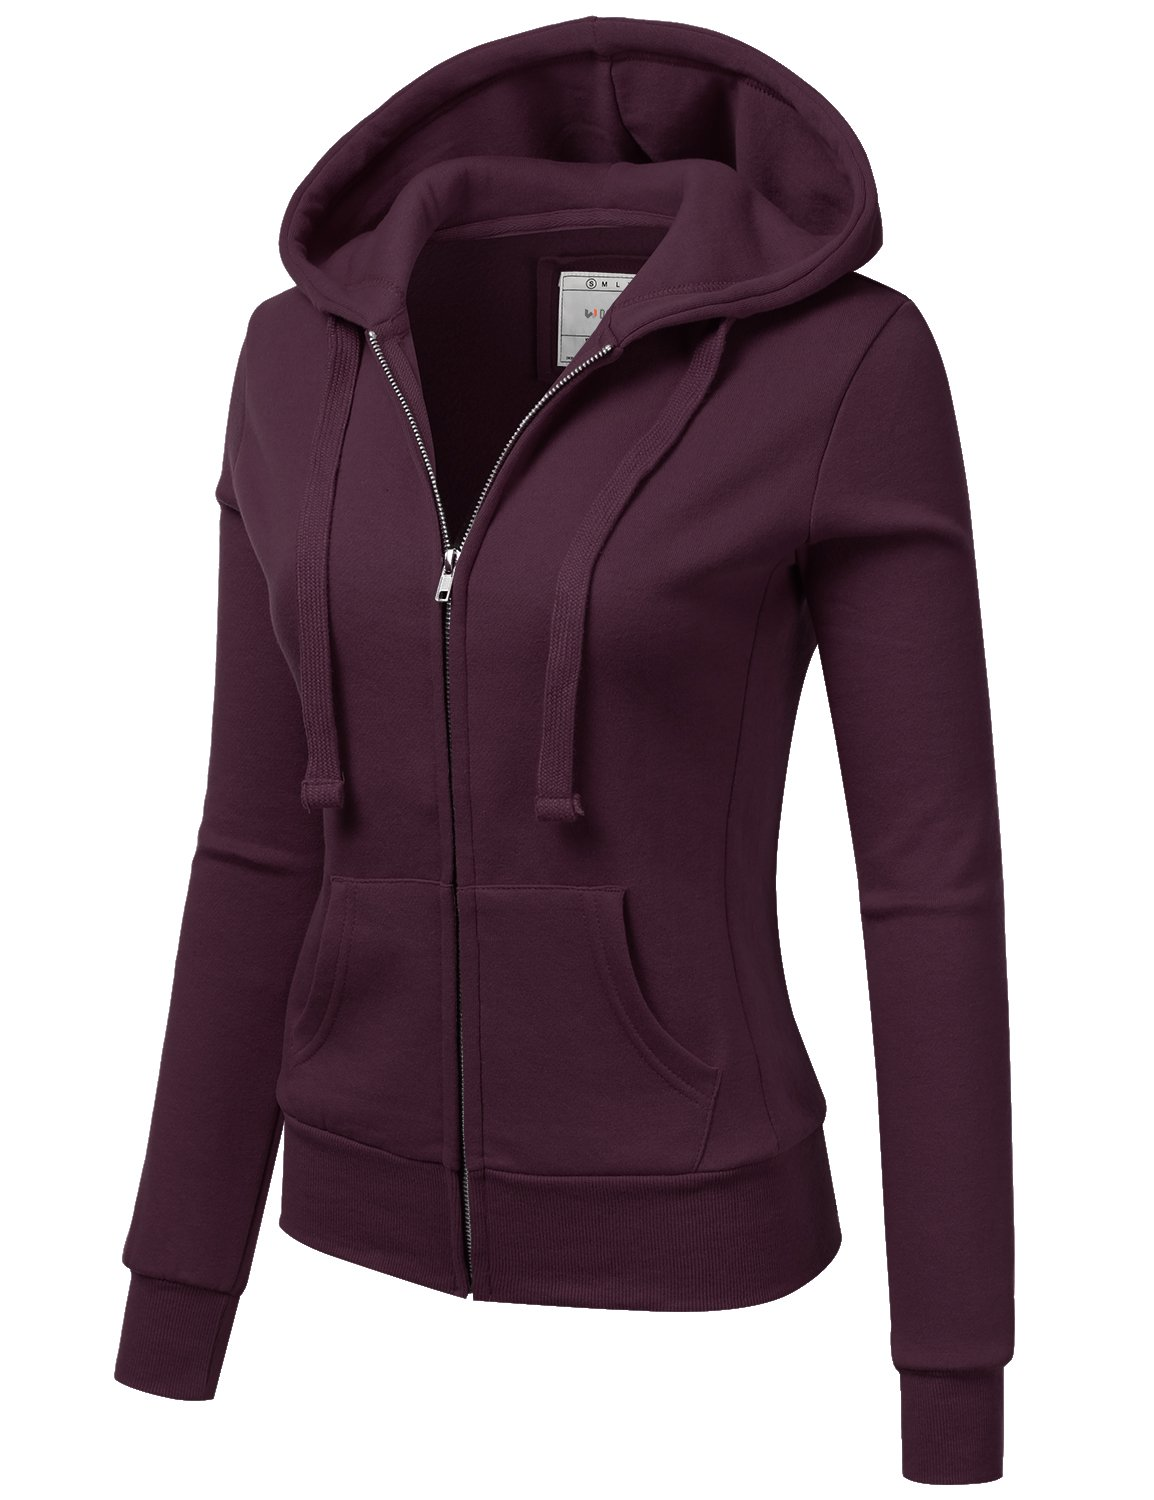 Doublju Lightweight Thin Zip-Up Hoodie Jacket for Women with Plus Size Plum Large by Doublju (Image #2)